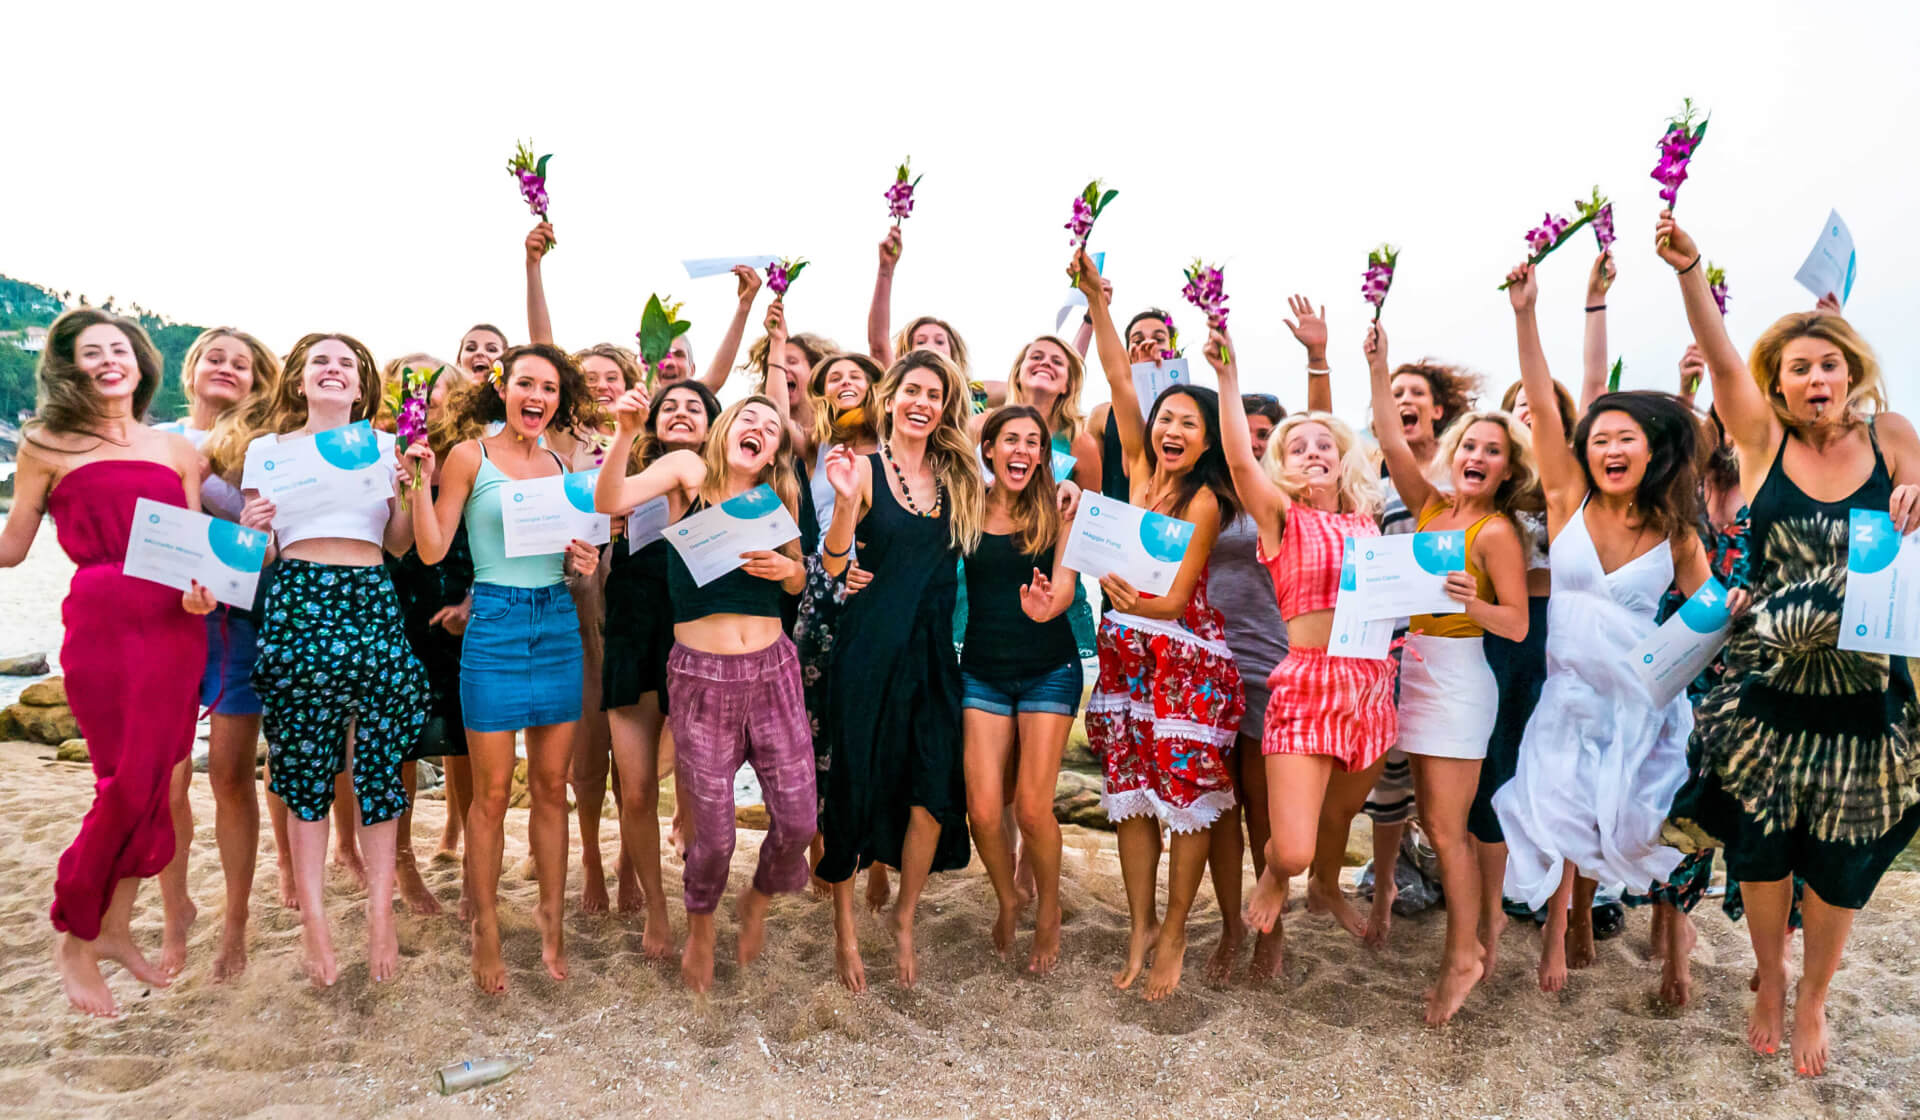 Group of yoga teacher training graduates holding their new YTT certificates and flowers, jumping in the air to celebrate their graduation on a beach